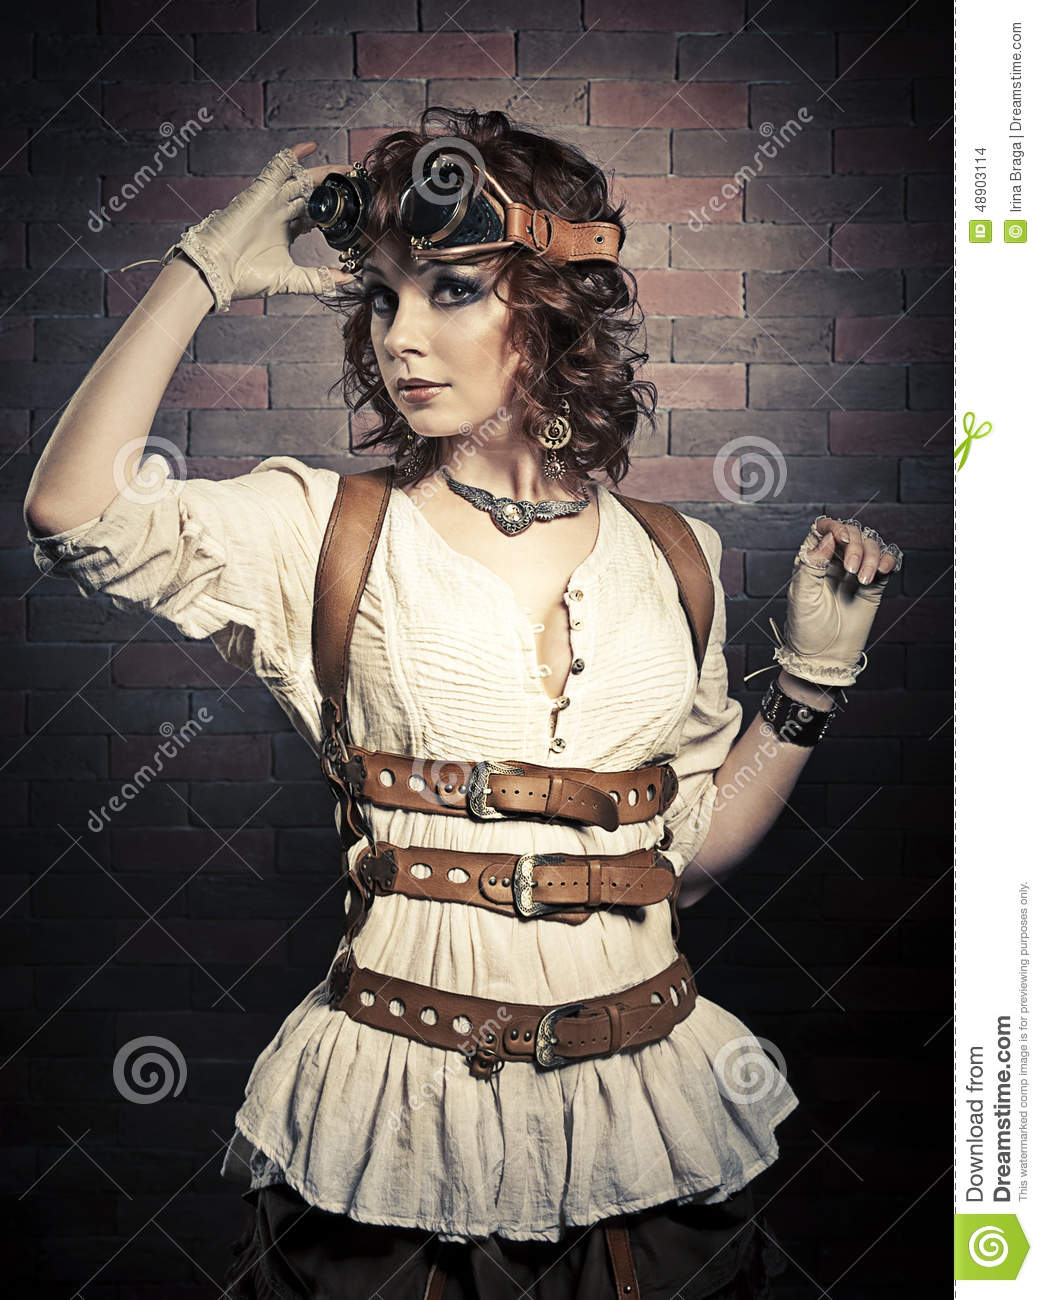 Exceptionnel Beautiful Redhair Woman With Steampunk Goggles Stock Photo - Image  TB11